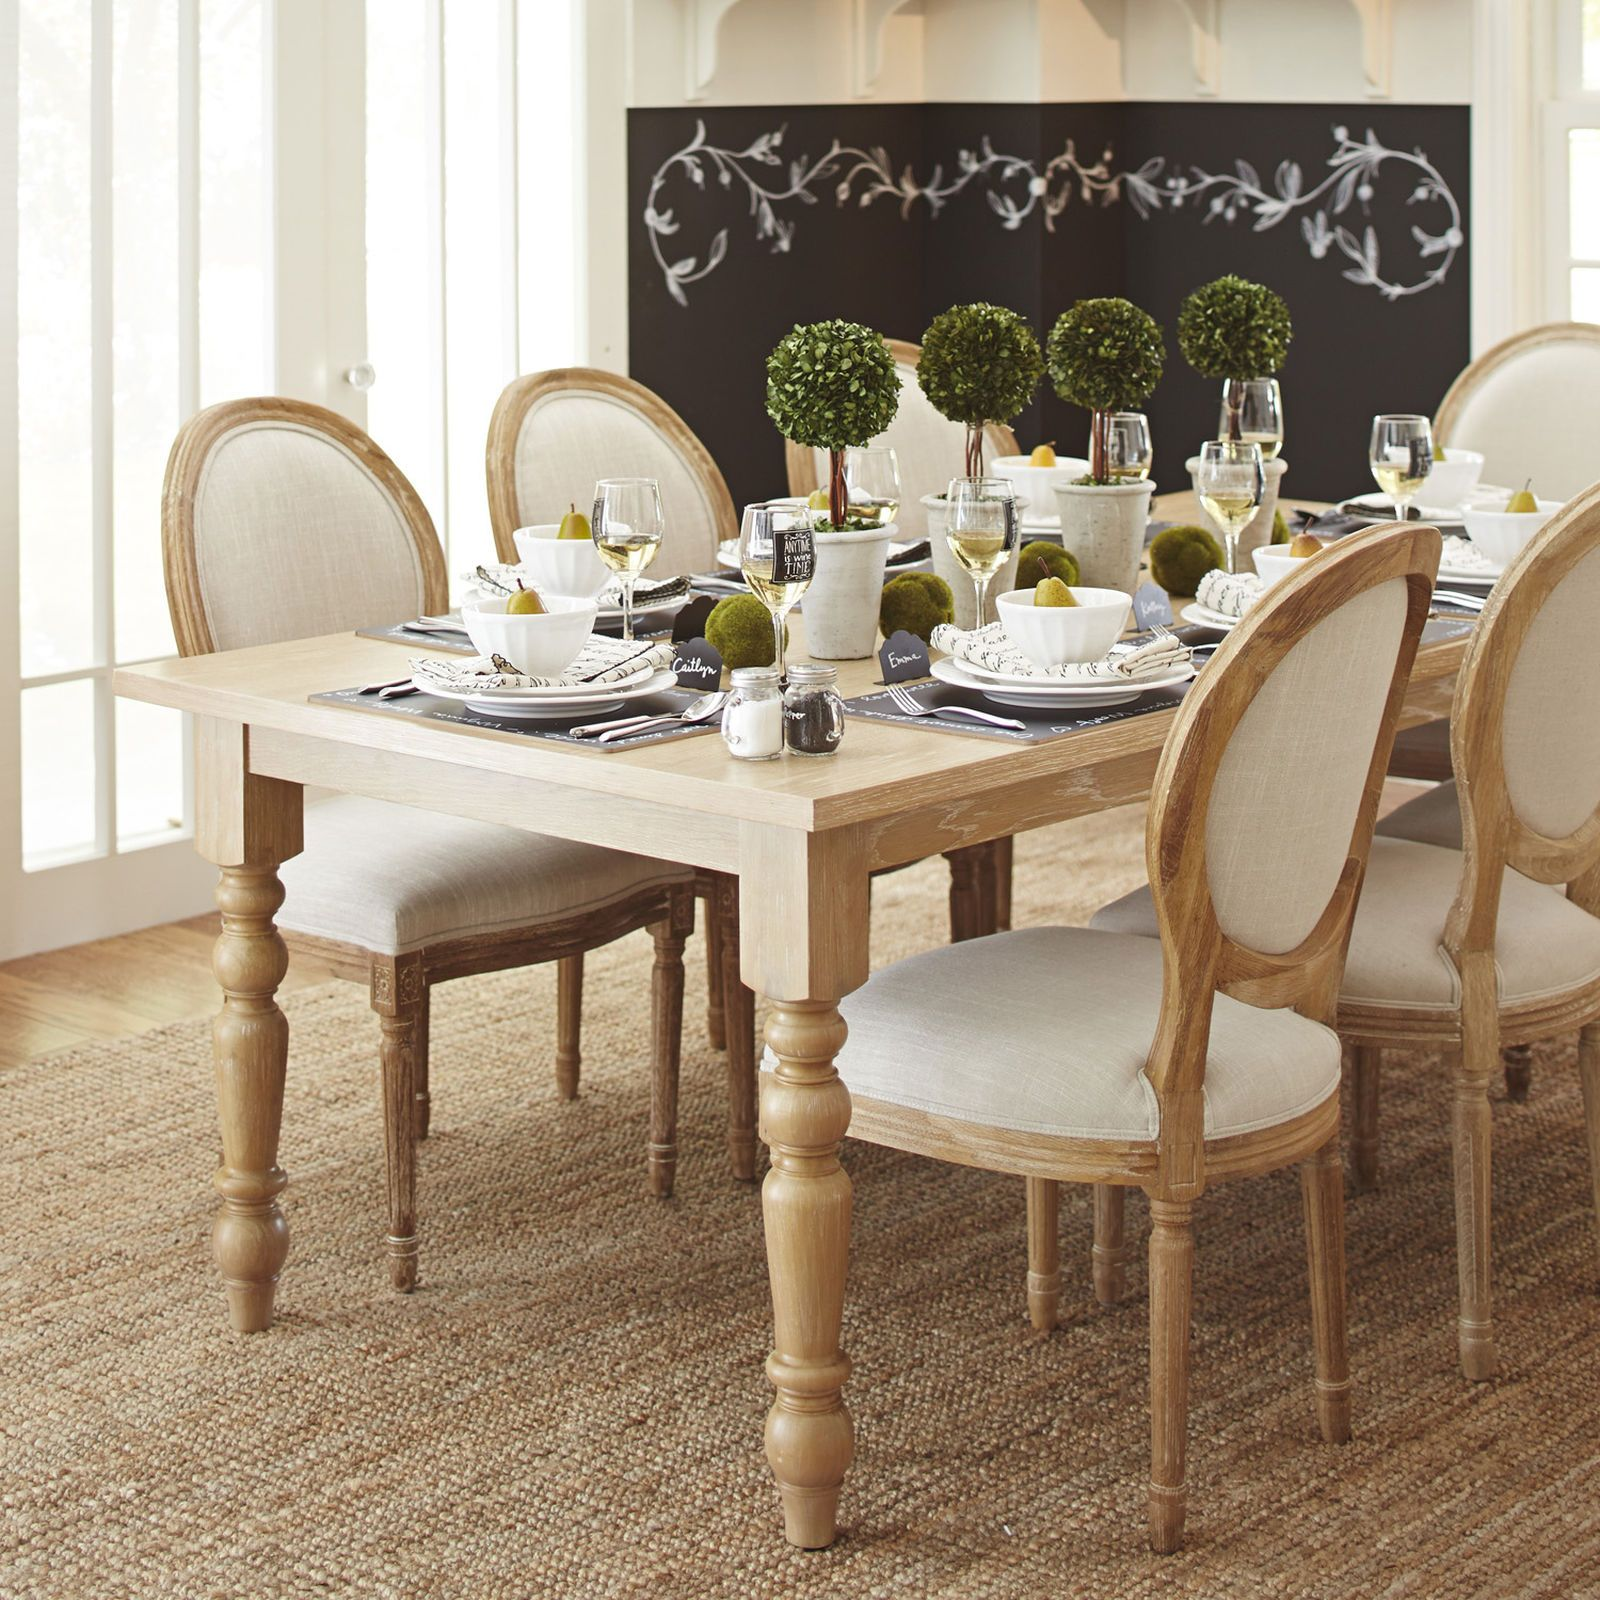 oroa table gilbert black dining products collections furniture eichholtz tables